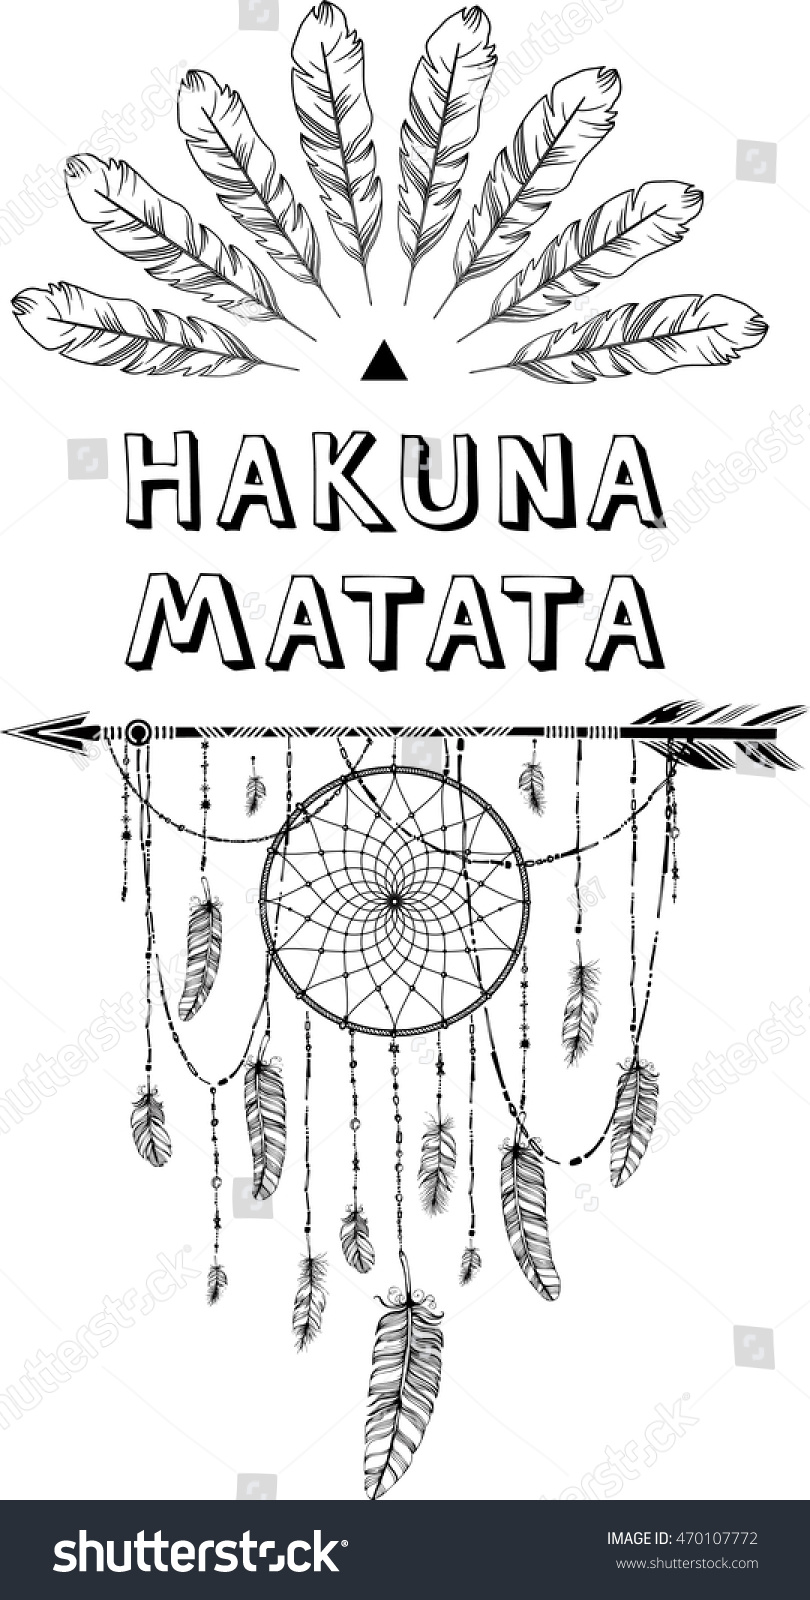 Hakuna Matata Swahili Phrase Means No Stock Vector Royalty Free